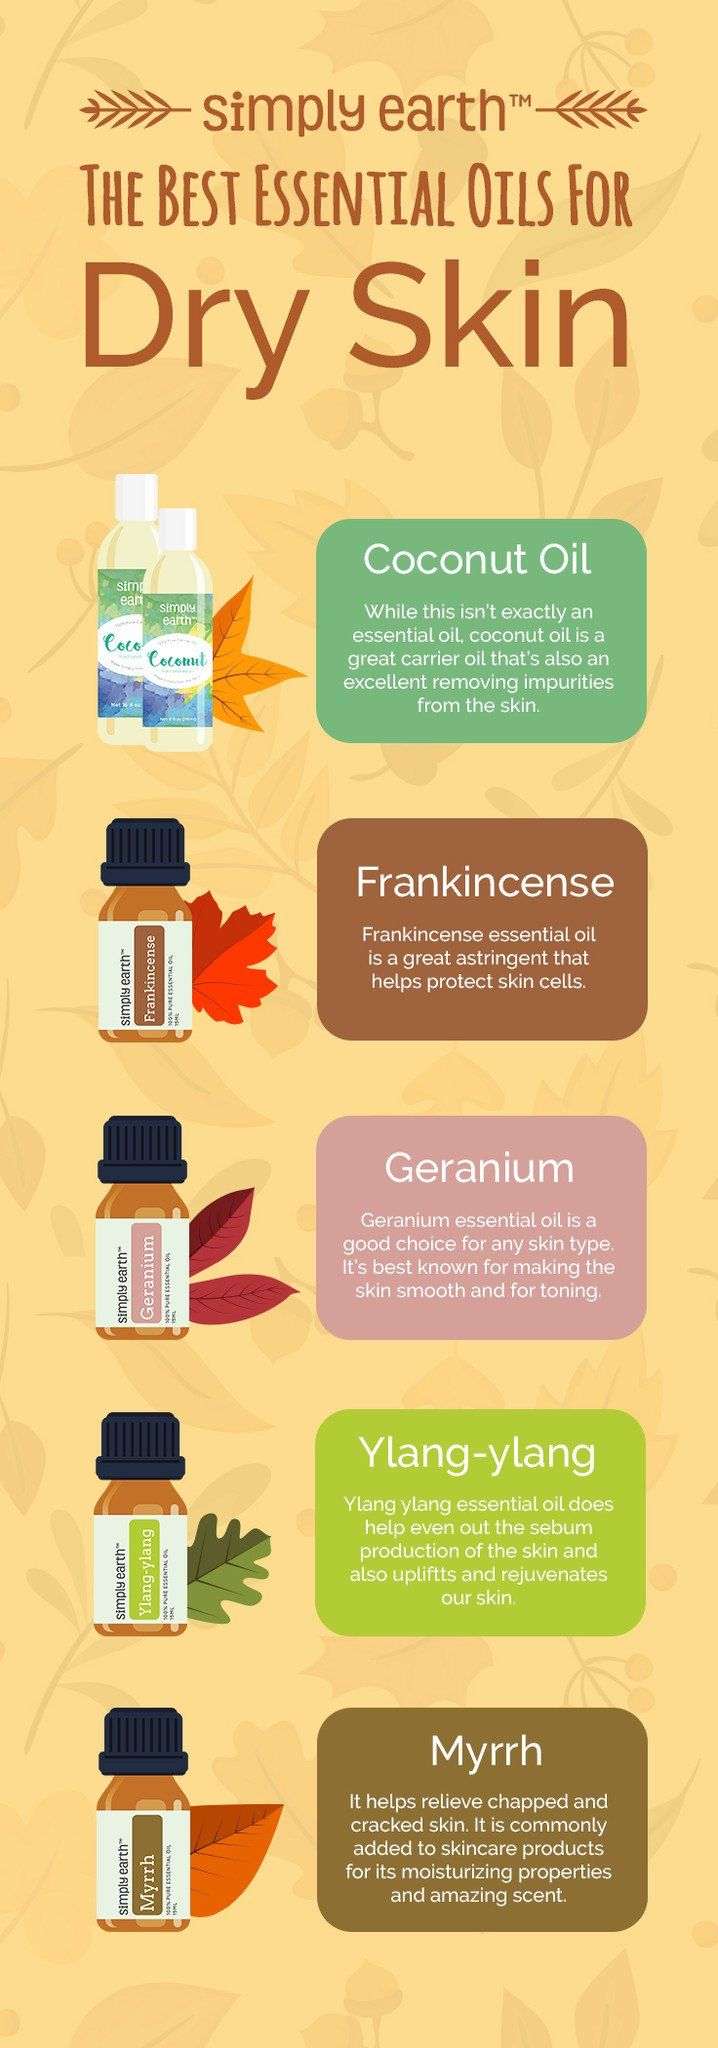 The Best 5 Essential Oils For Dry Skin Oil For Dry Skin Oils For Skin Dry Skin On Face